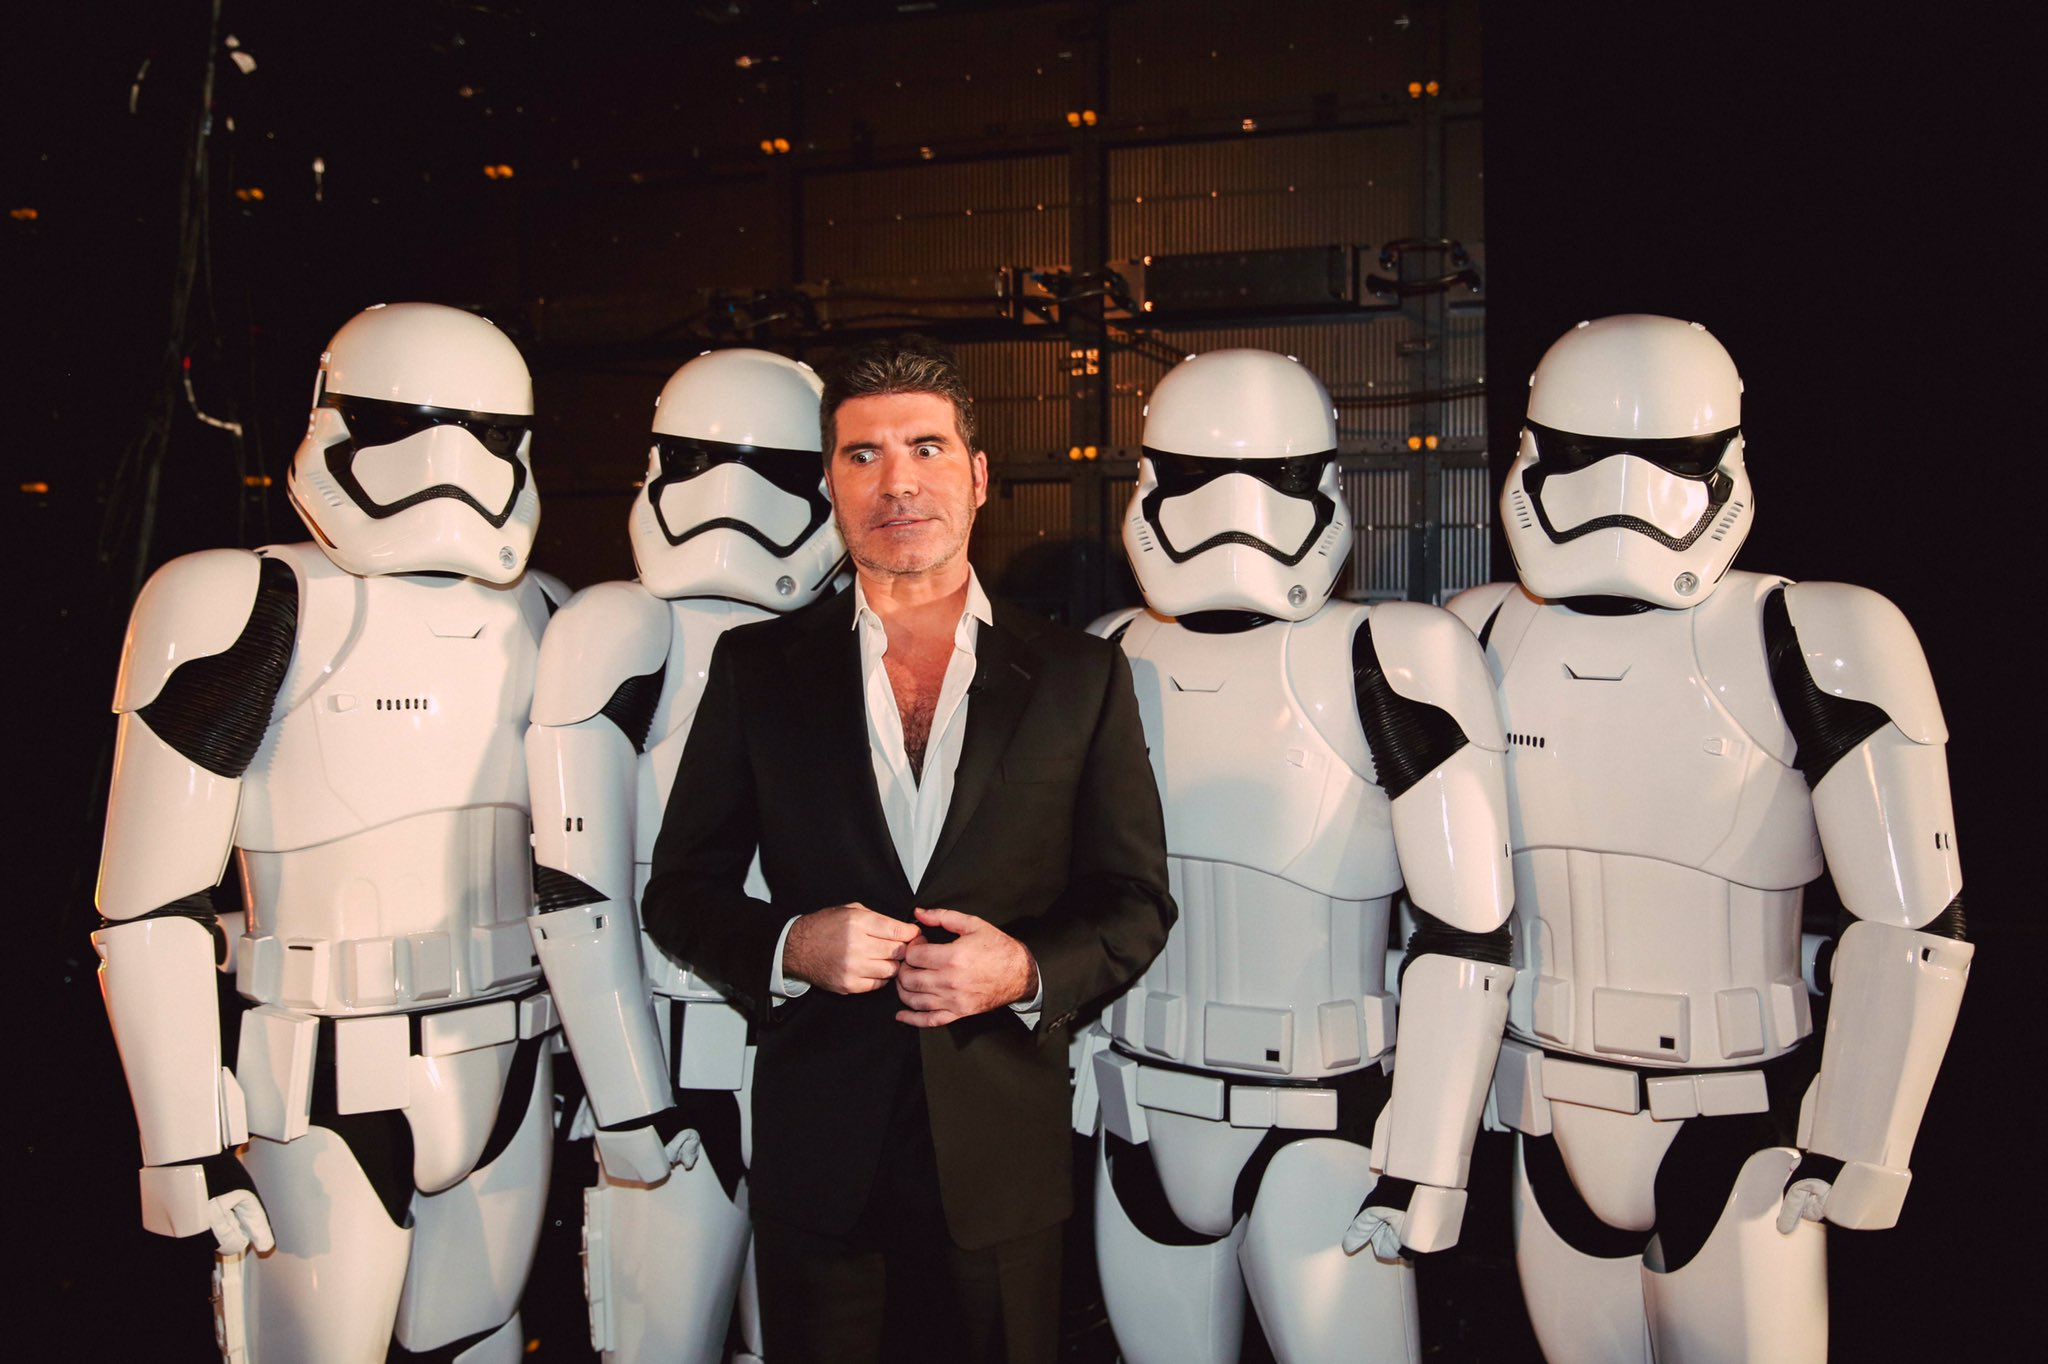 Happy @starwars day! Flashback to this moment on @thexfactor. @simoncowell w/ Stormtroopers #MayThe4thBeWithYou 🚀 https://t.co/QTub3zbuEi